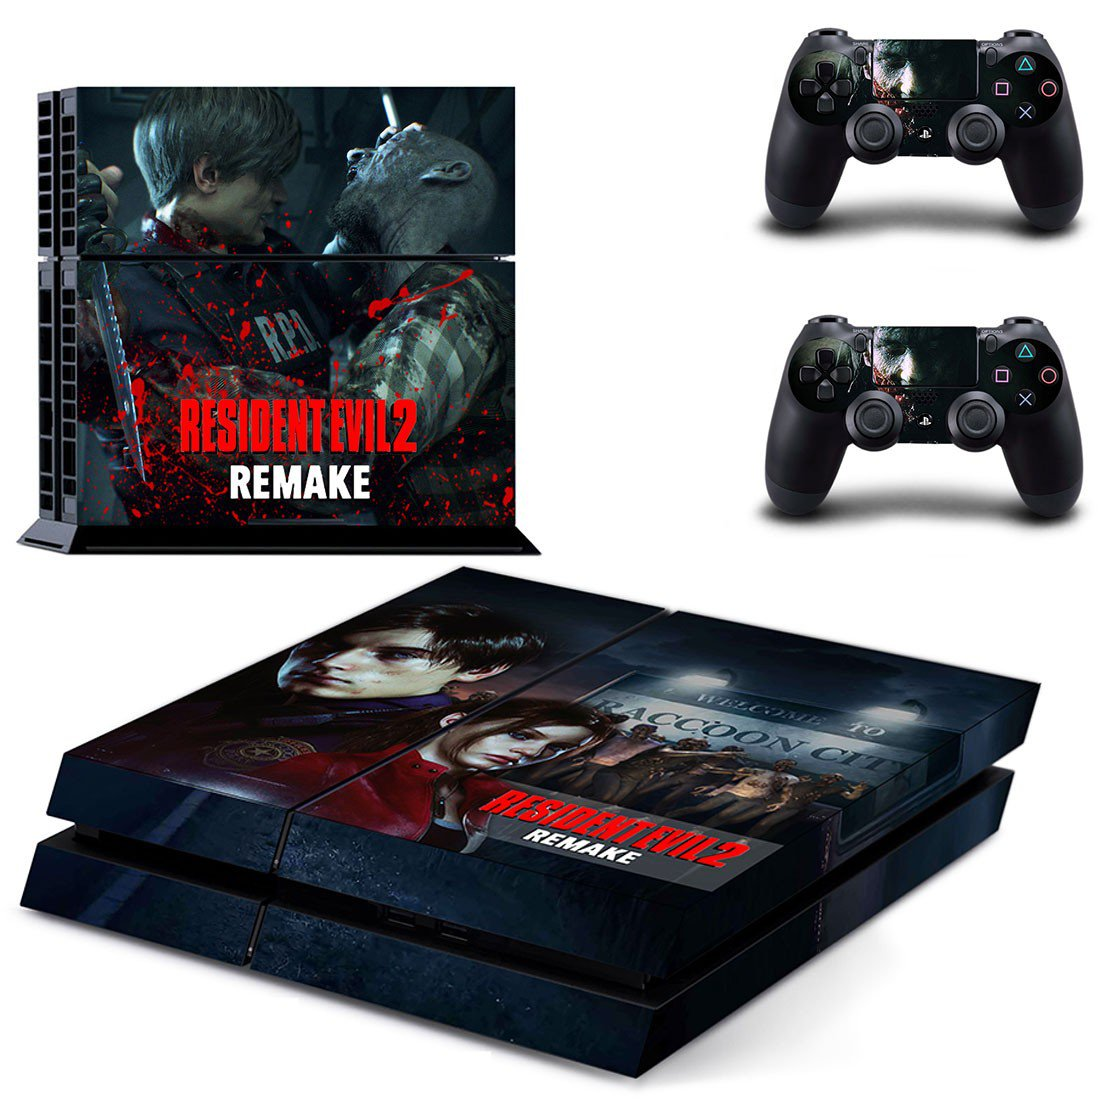 Resident Evil 2 remake decal skin sticker for PS4 console and controllers